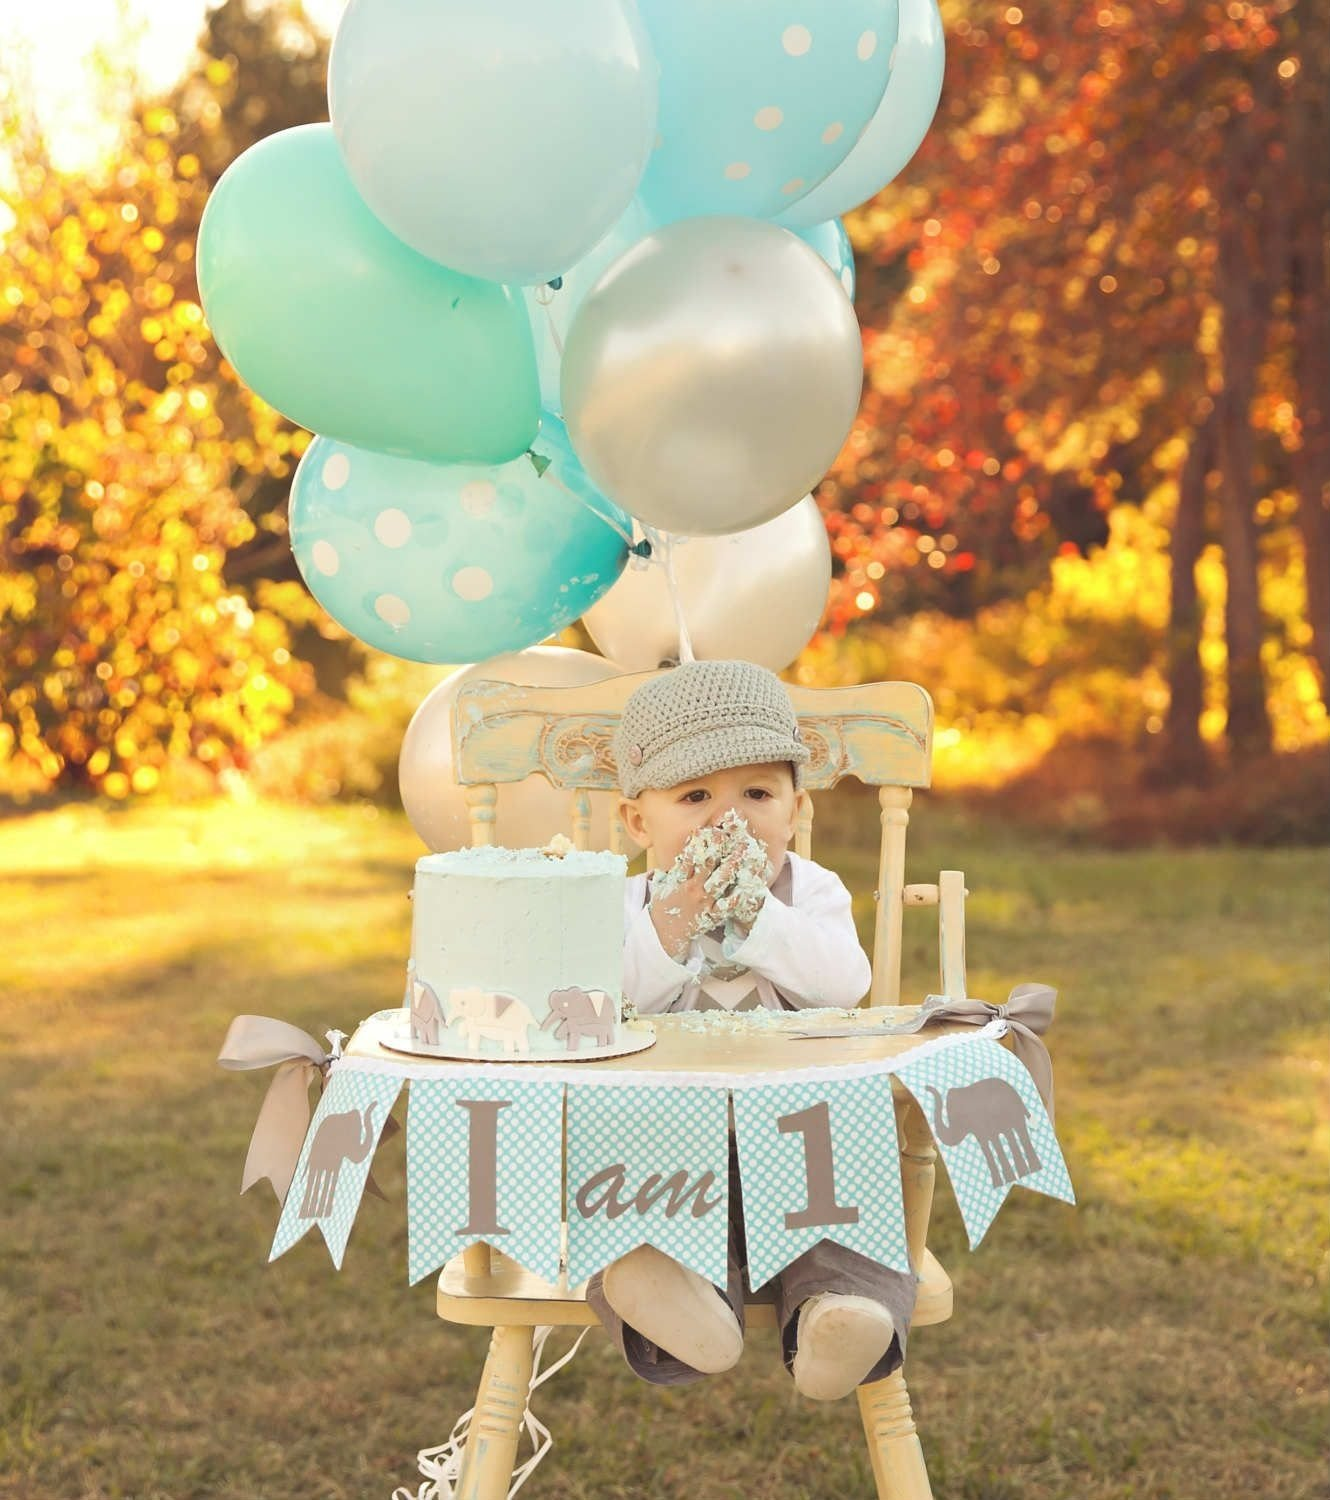 10 Famous One Year Birthday Party Ideas 10 1st birthday party ideas for boys part 2 birthday decorations 4 2020